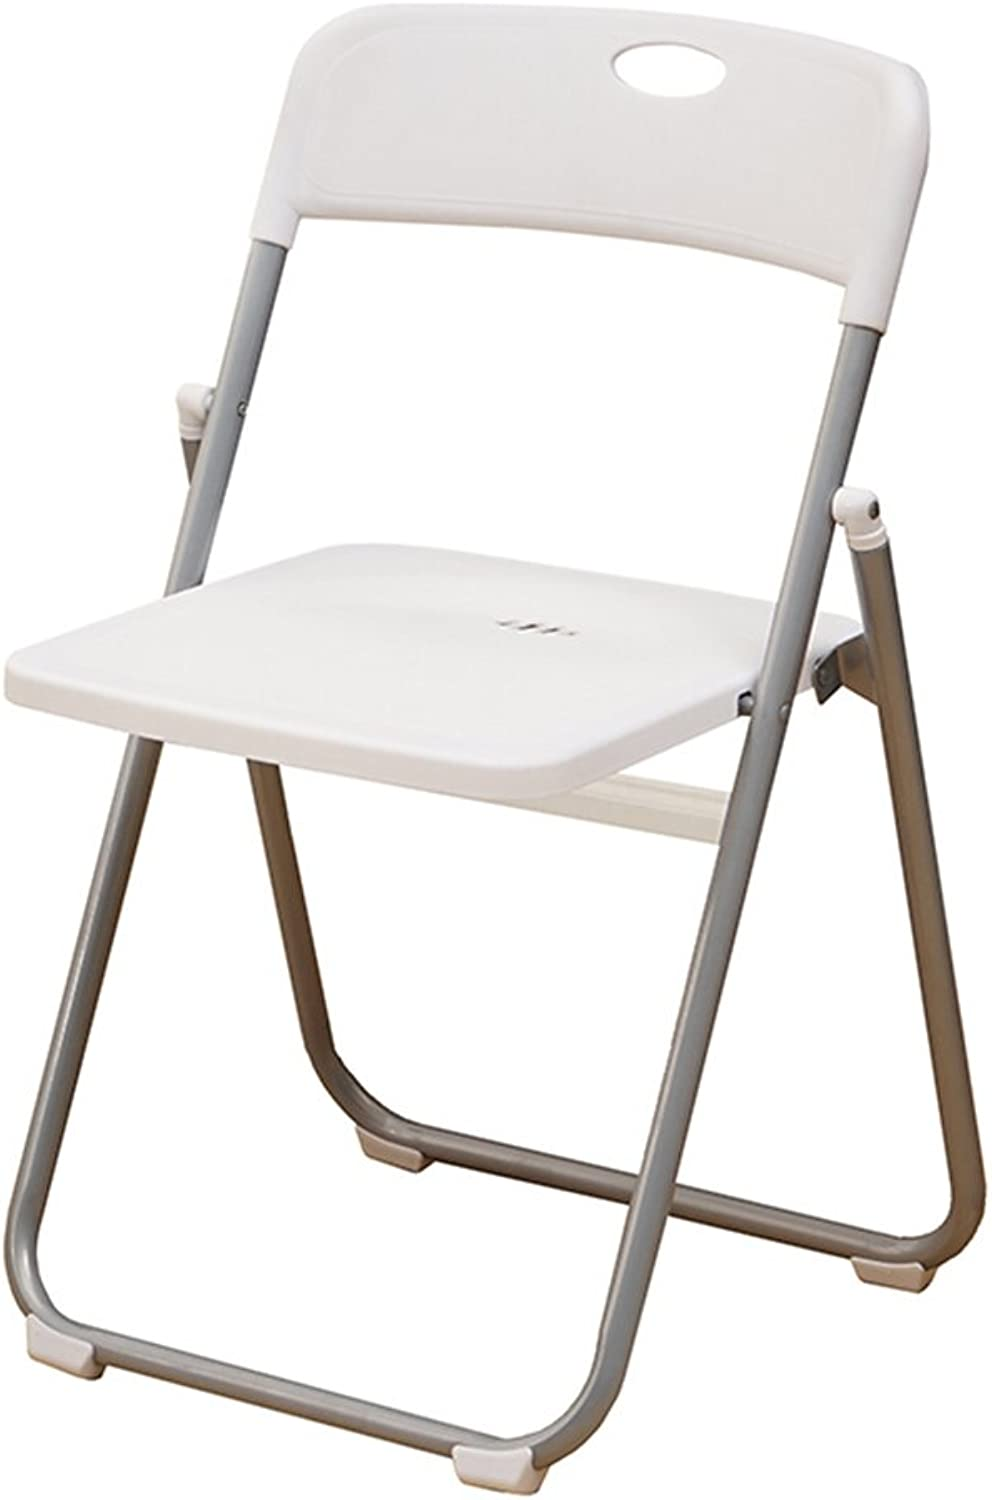 Chair   folding chair   office chair   dining chair   computer chair home   backrest chair ( color   White )